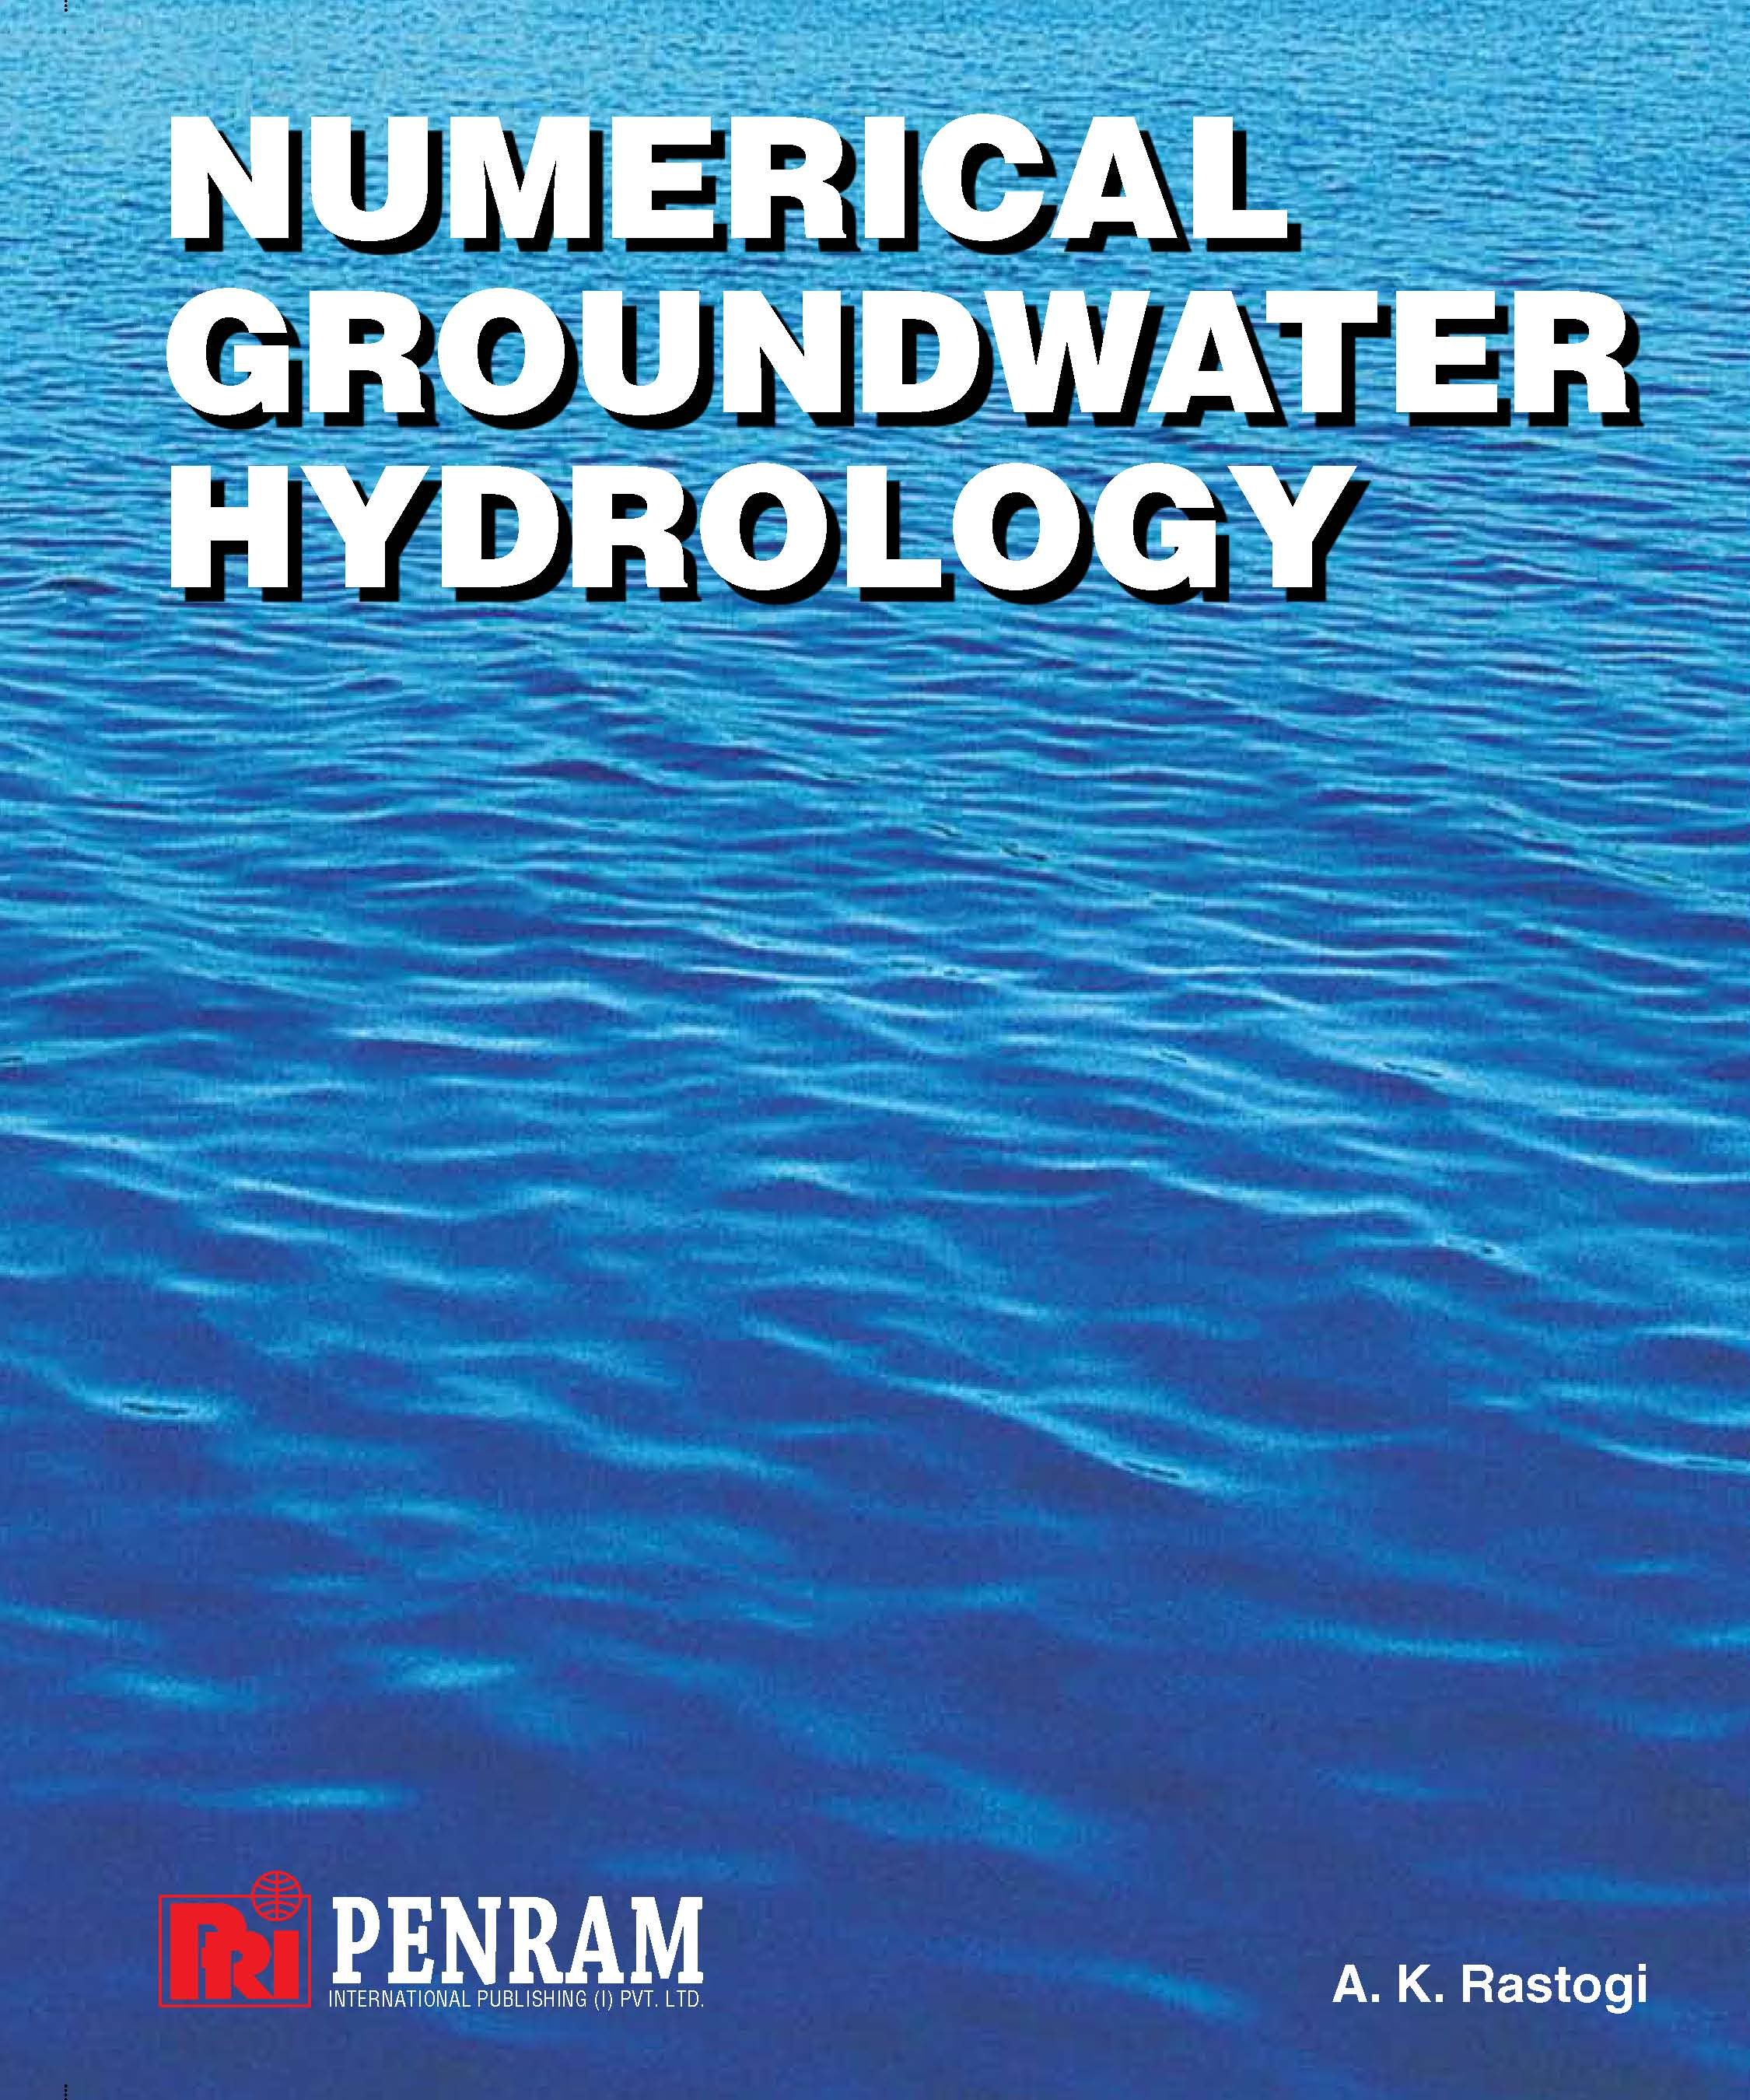 Books  Engineering  Hydrology  Numerical Groundwater Hydrology